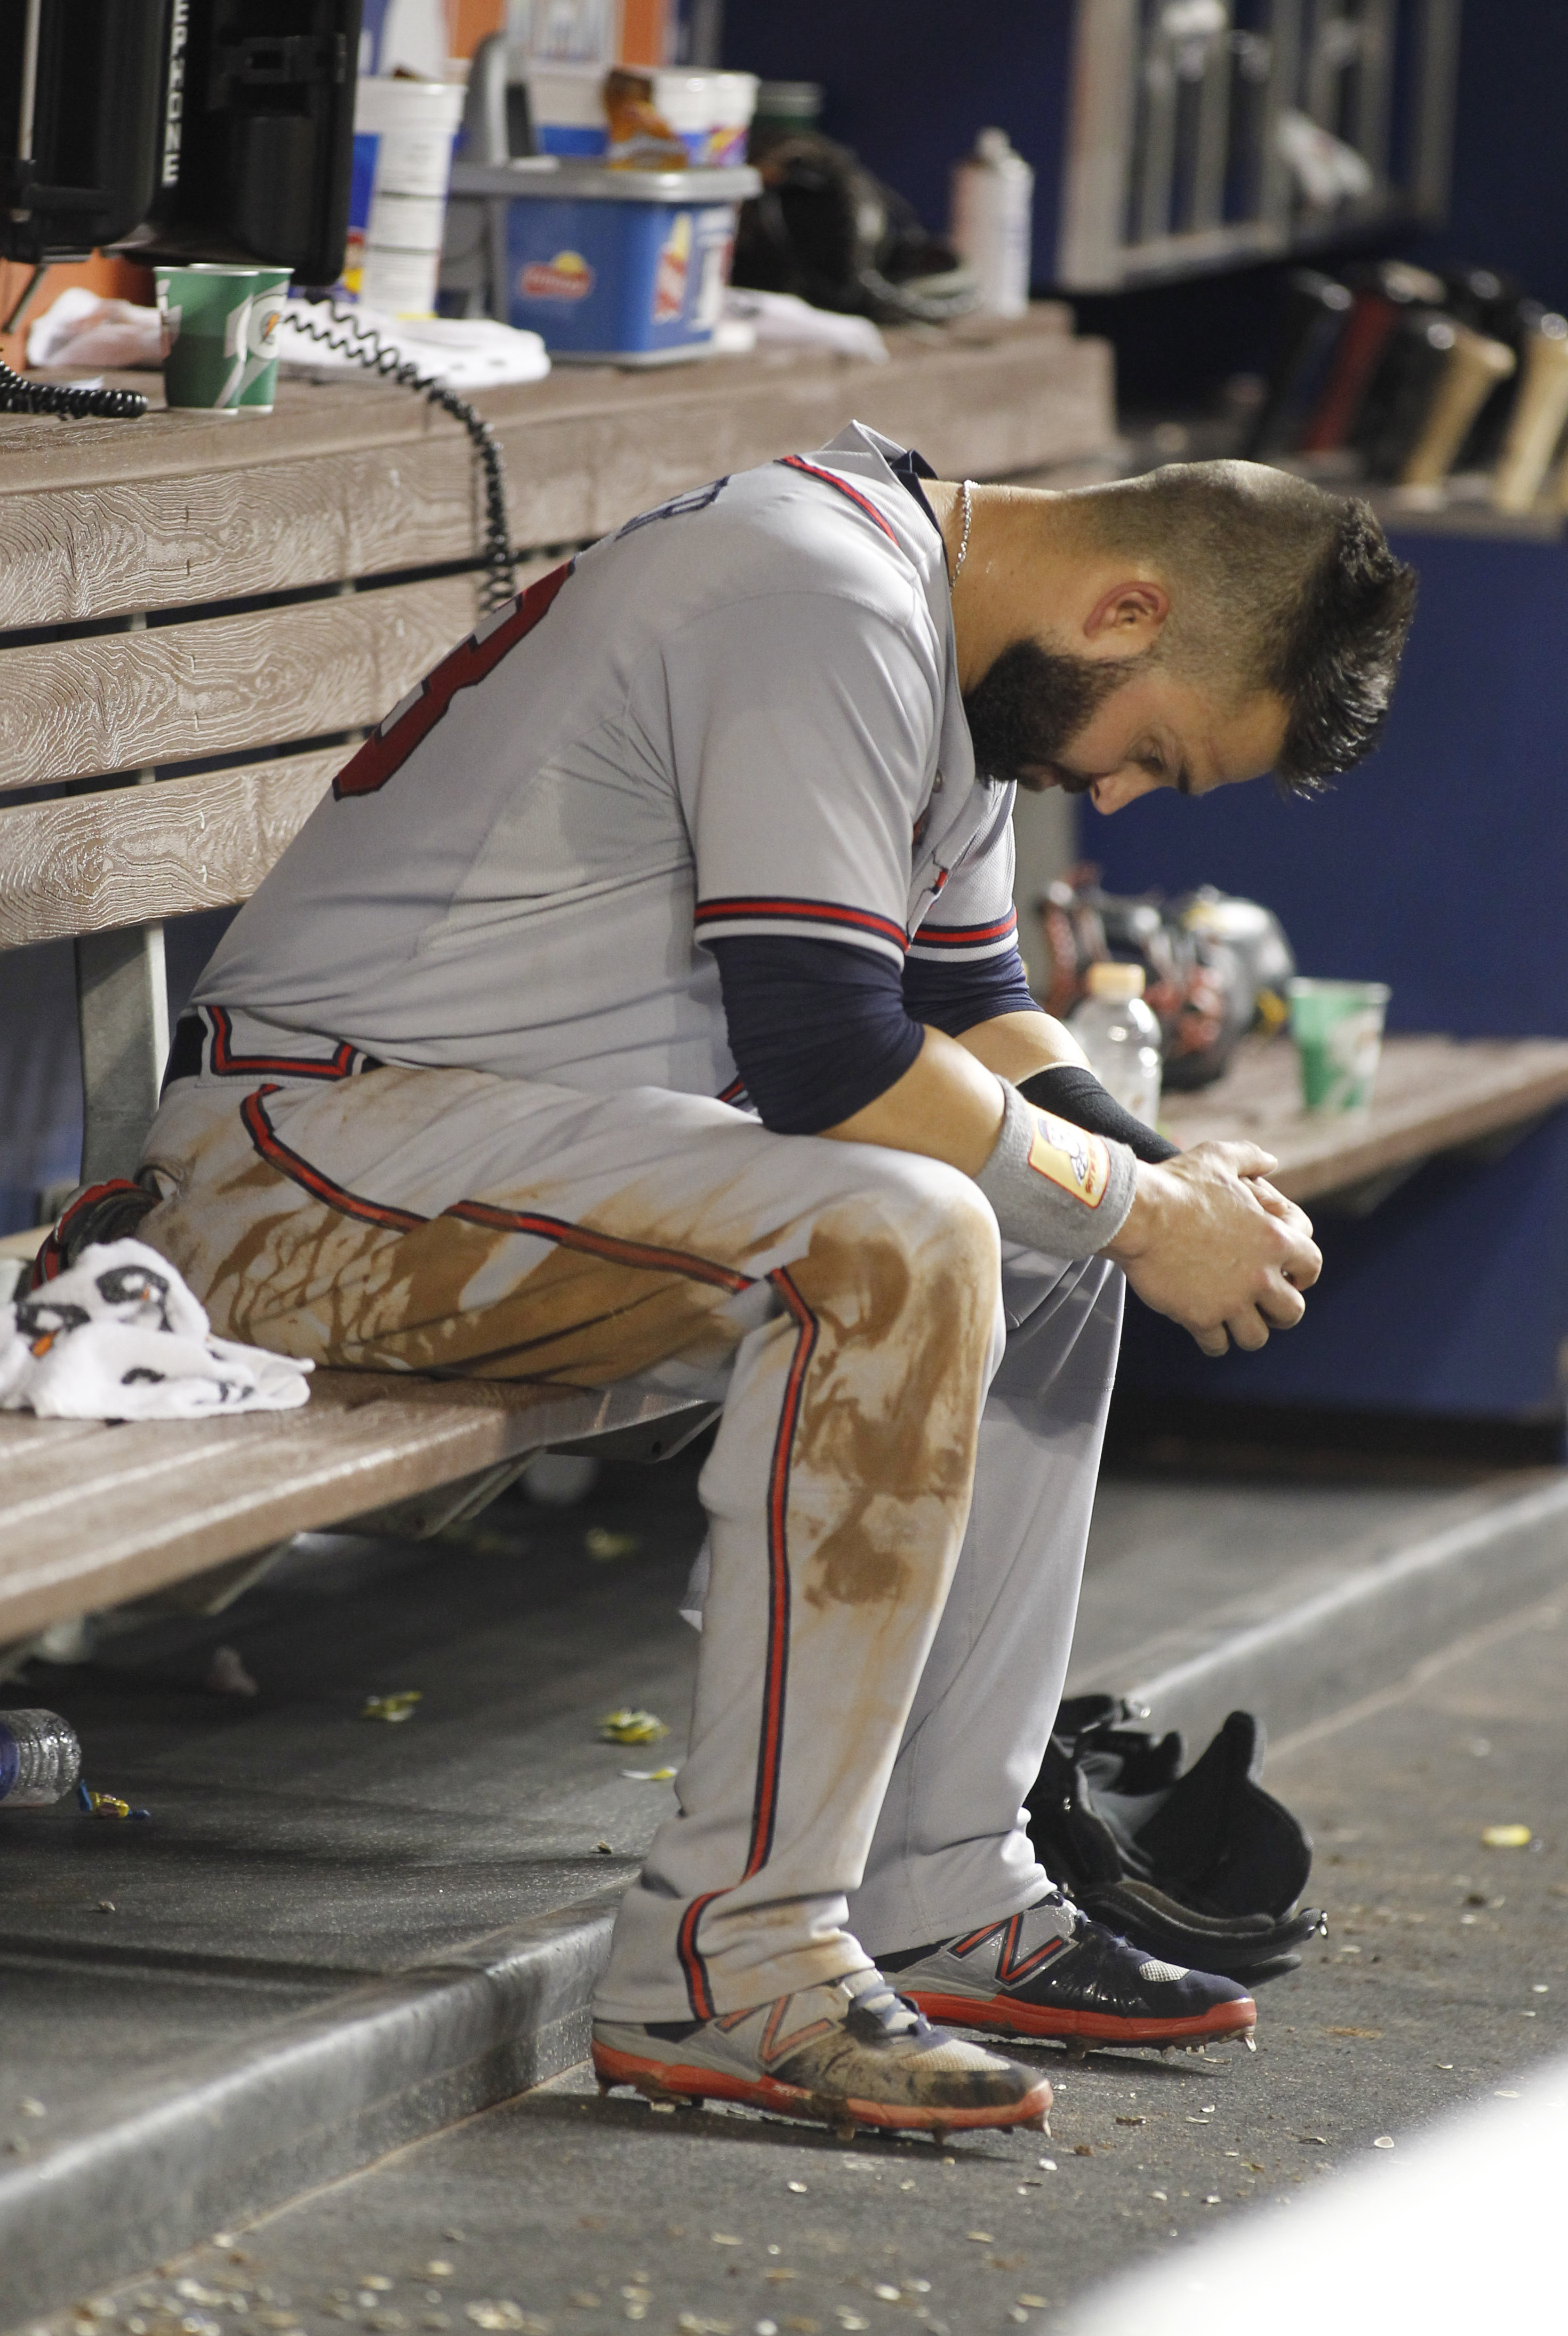 Atlanta Braves left fielder Nick Swisher (23) reacts in the dugout after he was tagged out at second base in the fourth inning of play against the Miami Marlins during a baseball game in Miami, Saturday, Sept. 26, 2015. (AP Photo/Joe Skipper)